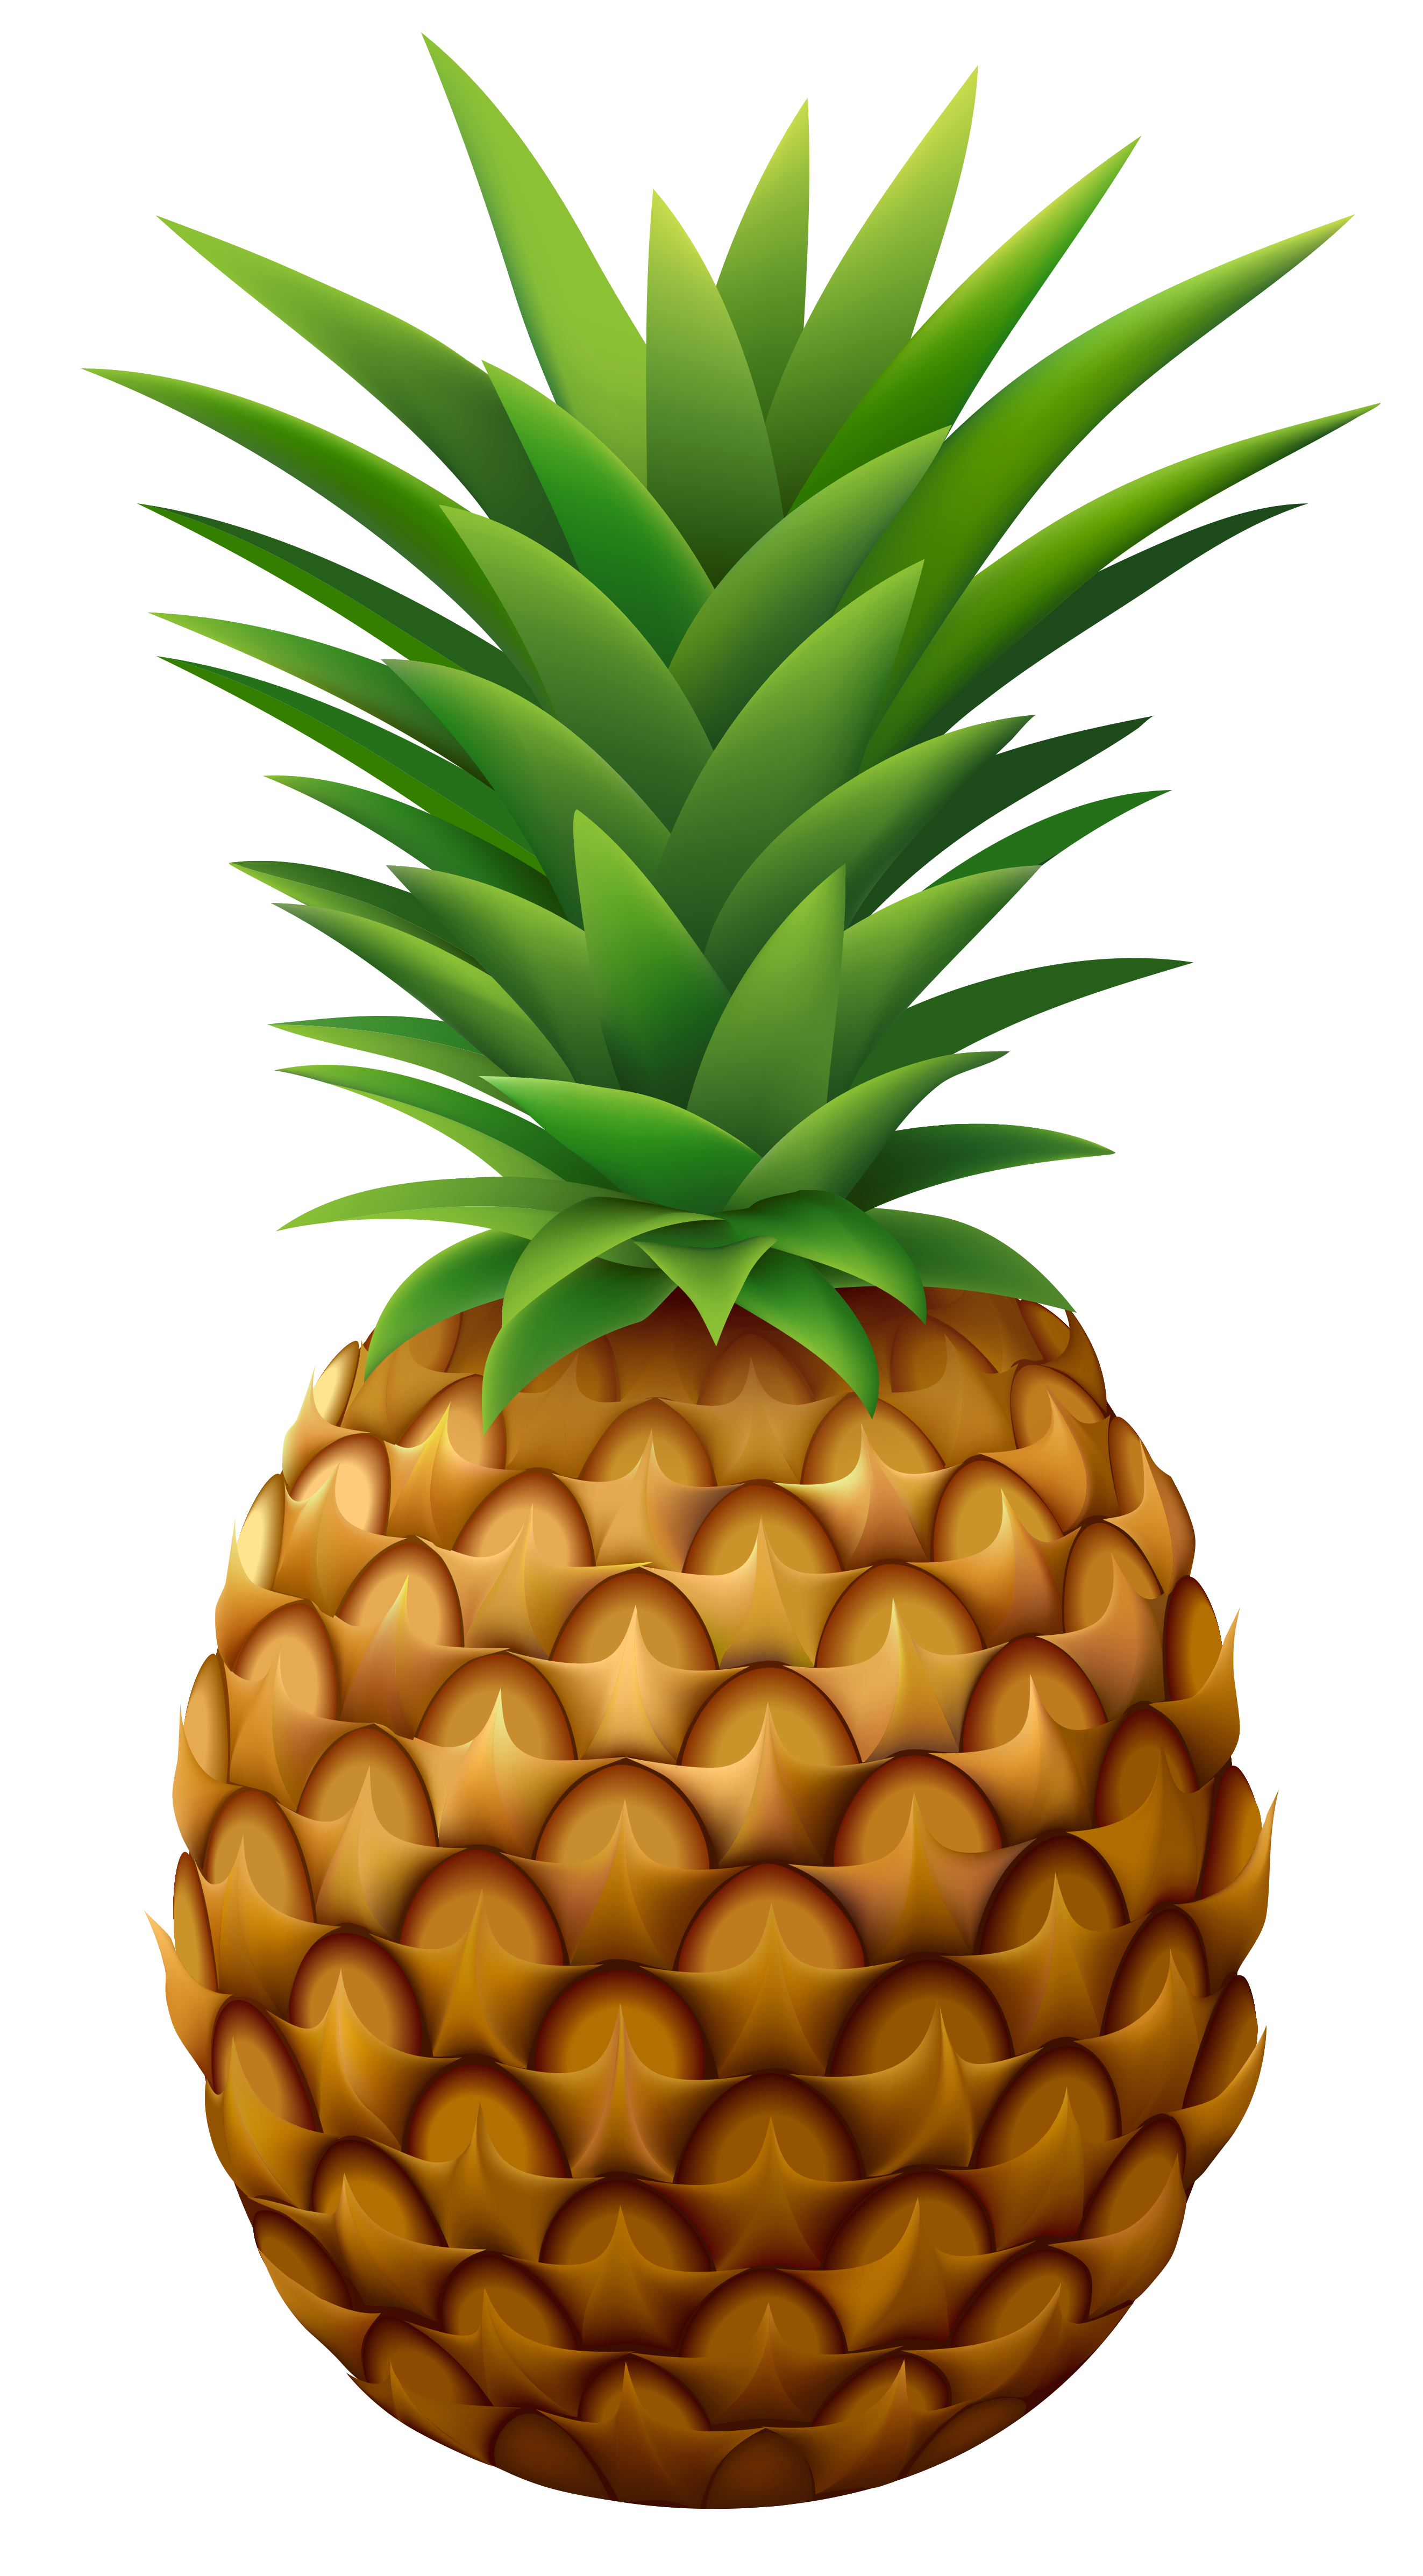 Pineapple PNG Vector Clipart Image.